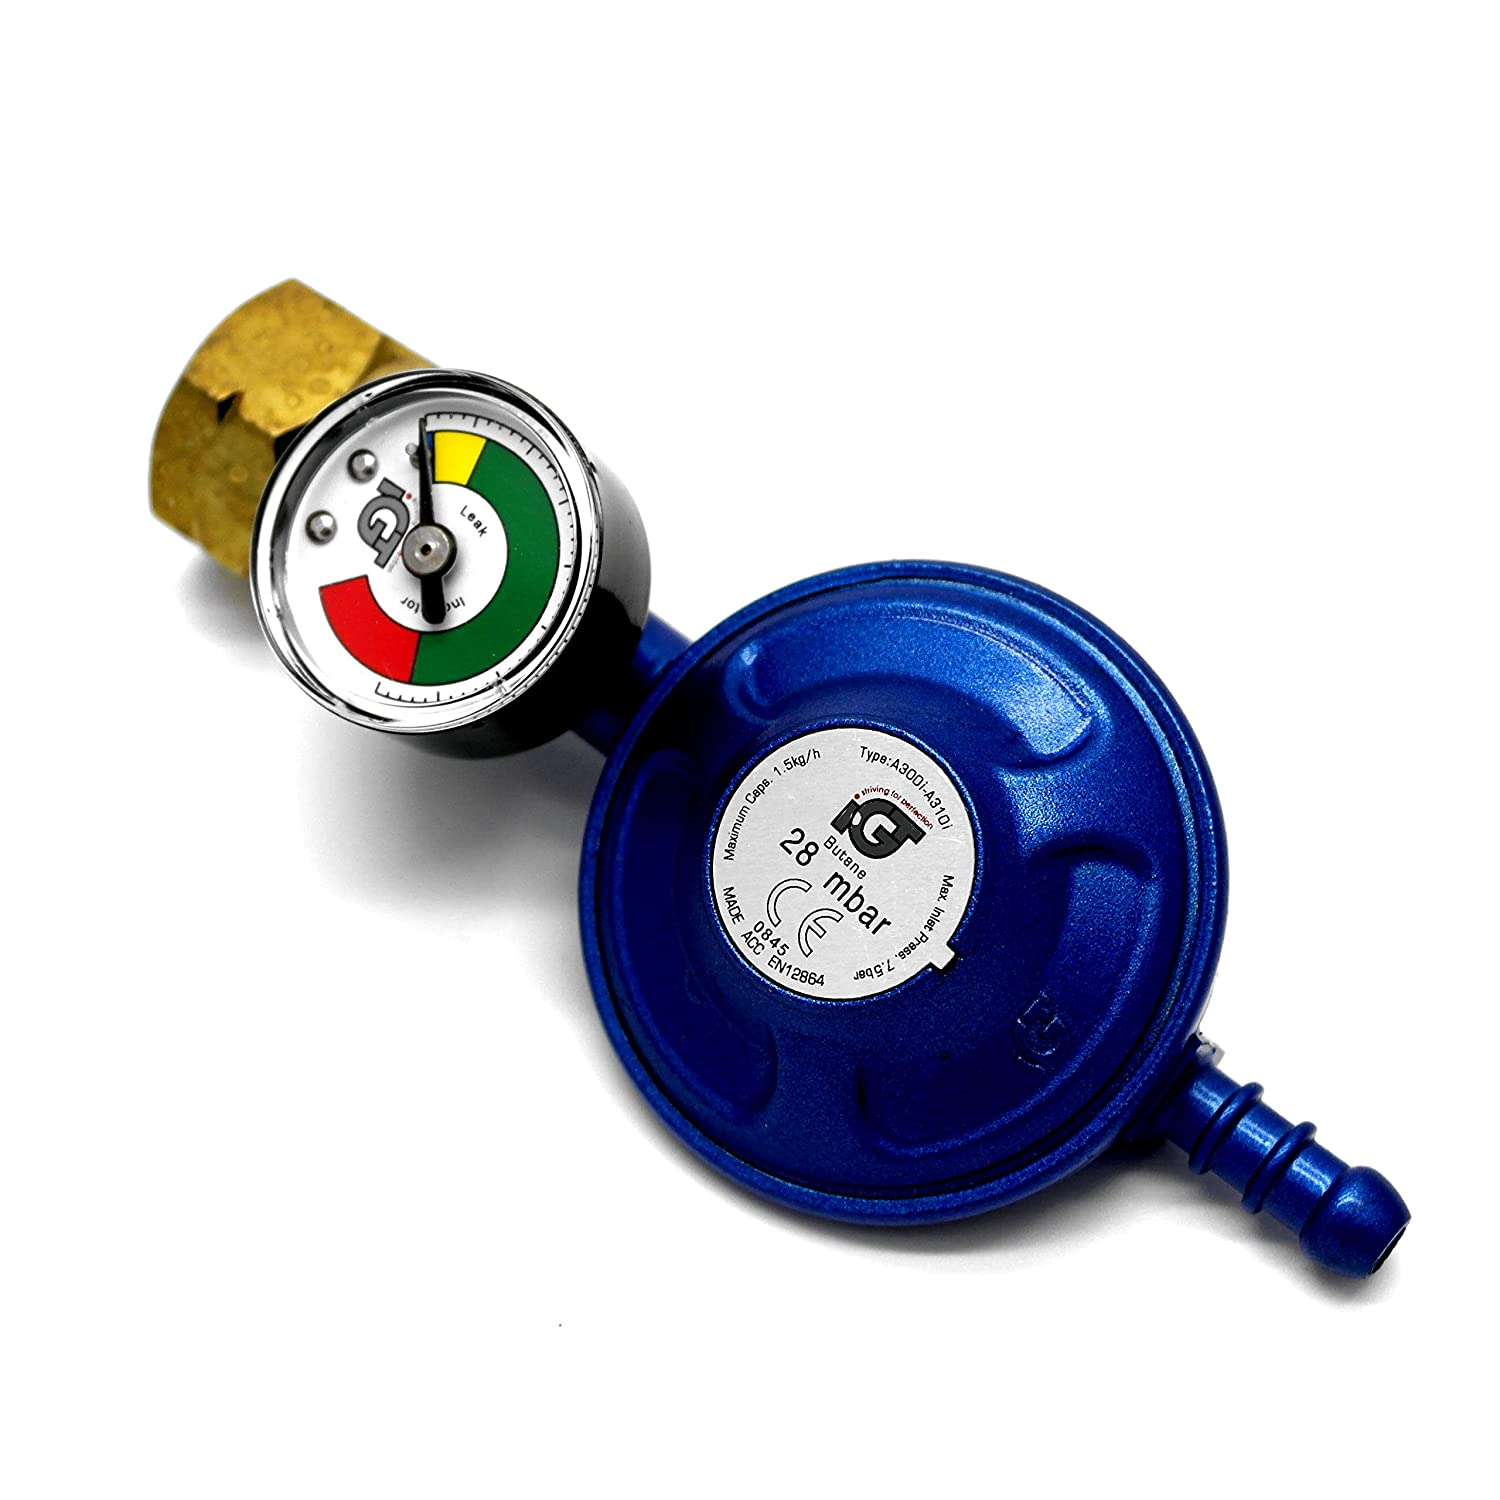 IGT Butane Gas Regulator With Pressure Gauge Fits Calor 4.5Kg Dumpy 5Y Warranty